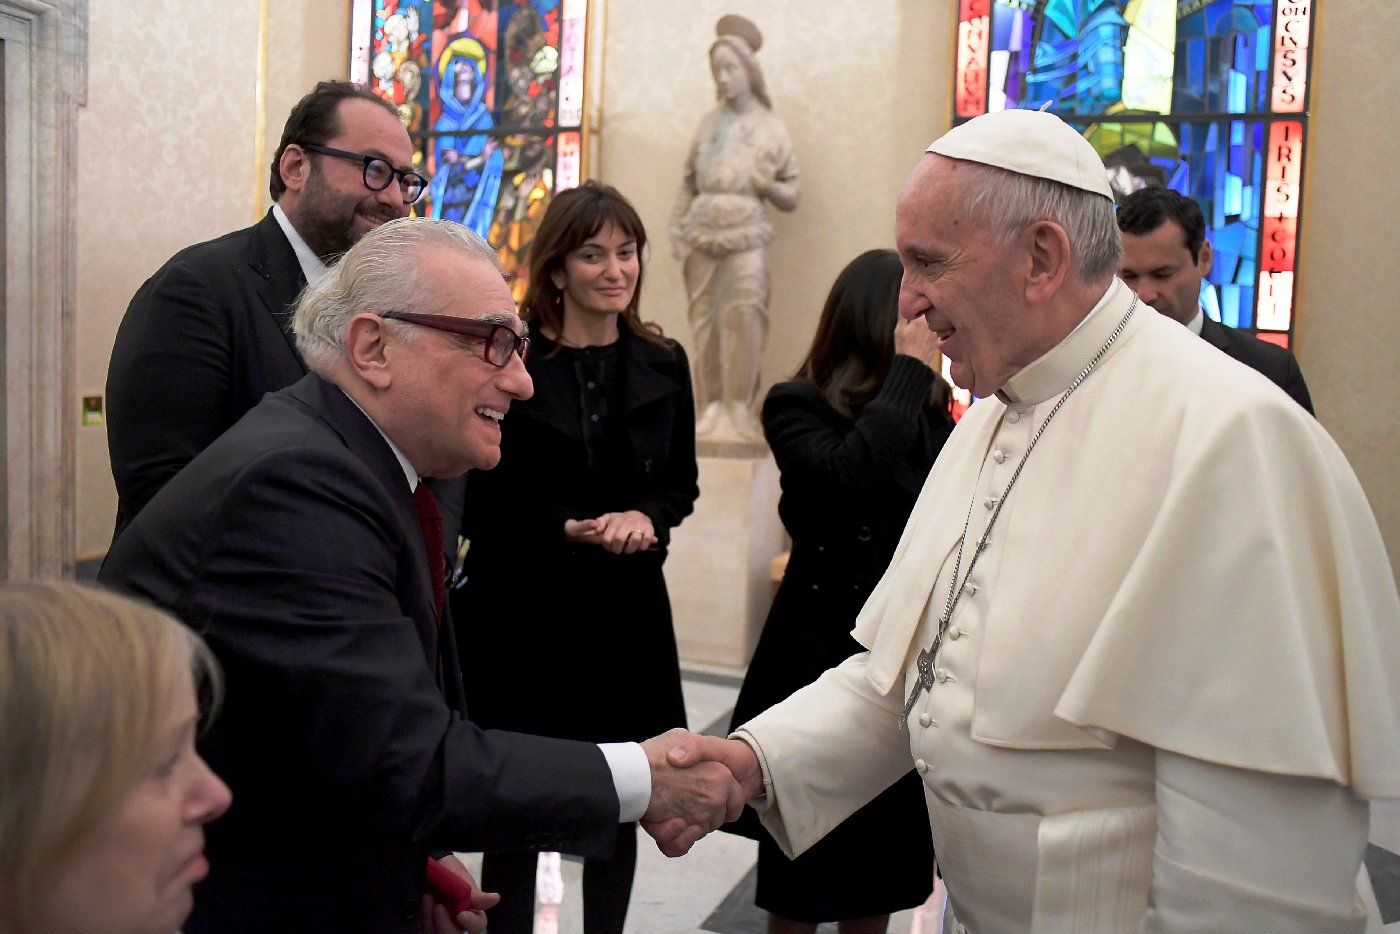 Pope Francis meets film director Martin Scorsese during a private audience at the Vatican November 30, 2016. Osservatore Romano/Handout via REUTERS ATTENTION EDITORS - THIS PICTURE WAS PROVIDED BY A THIRD PARTY. EDITORIAL USE ONLY. NO RESALES. NO ARCHIVE.